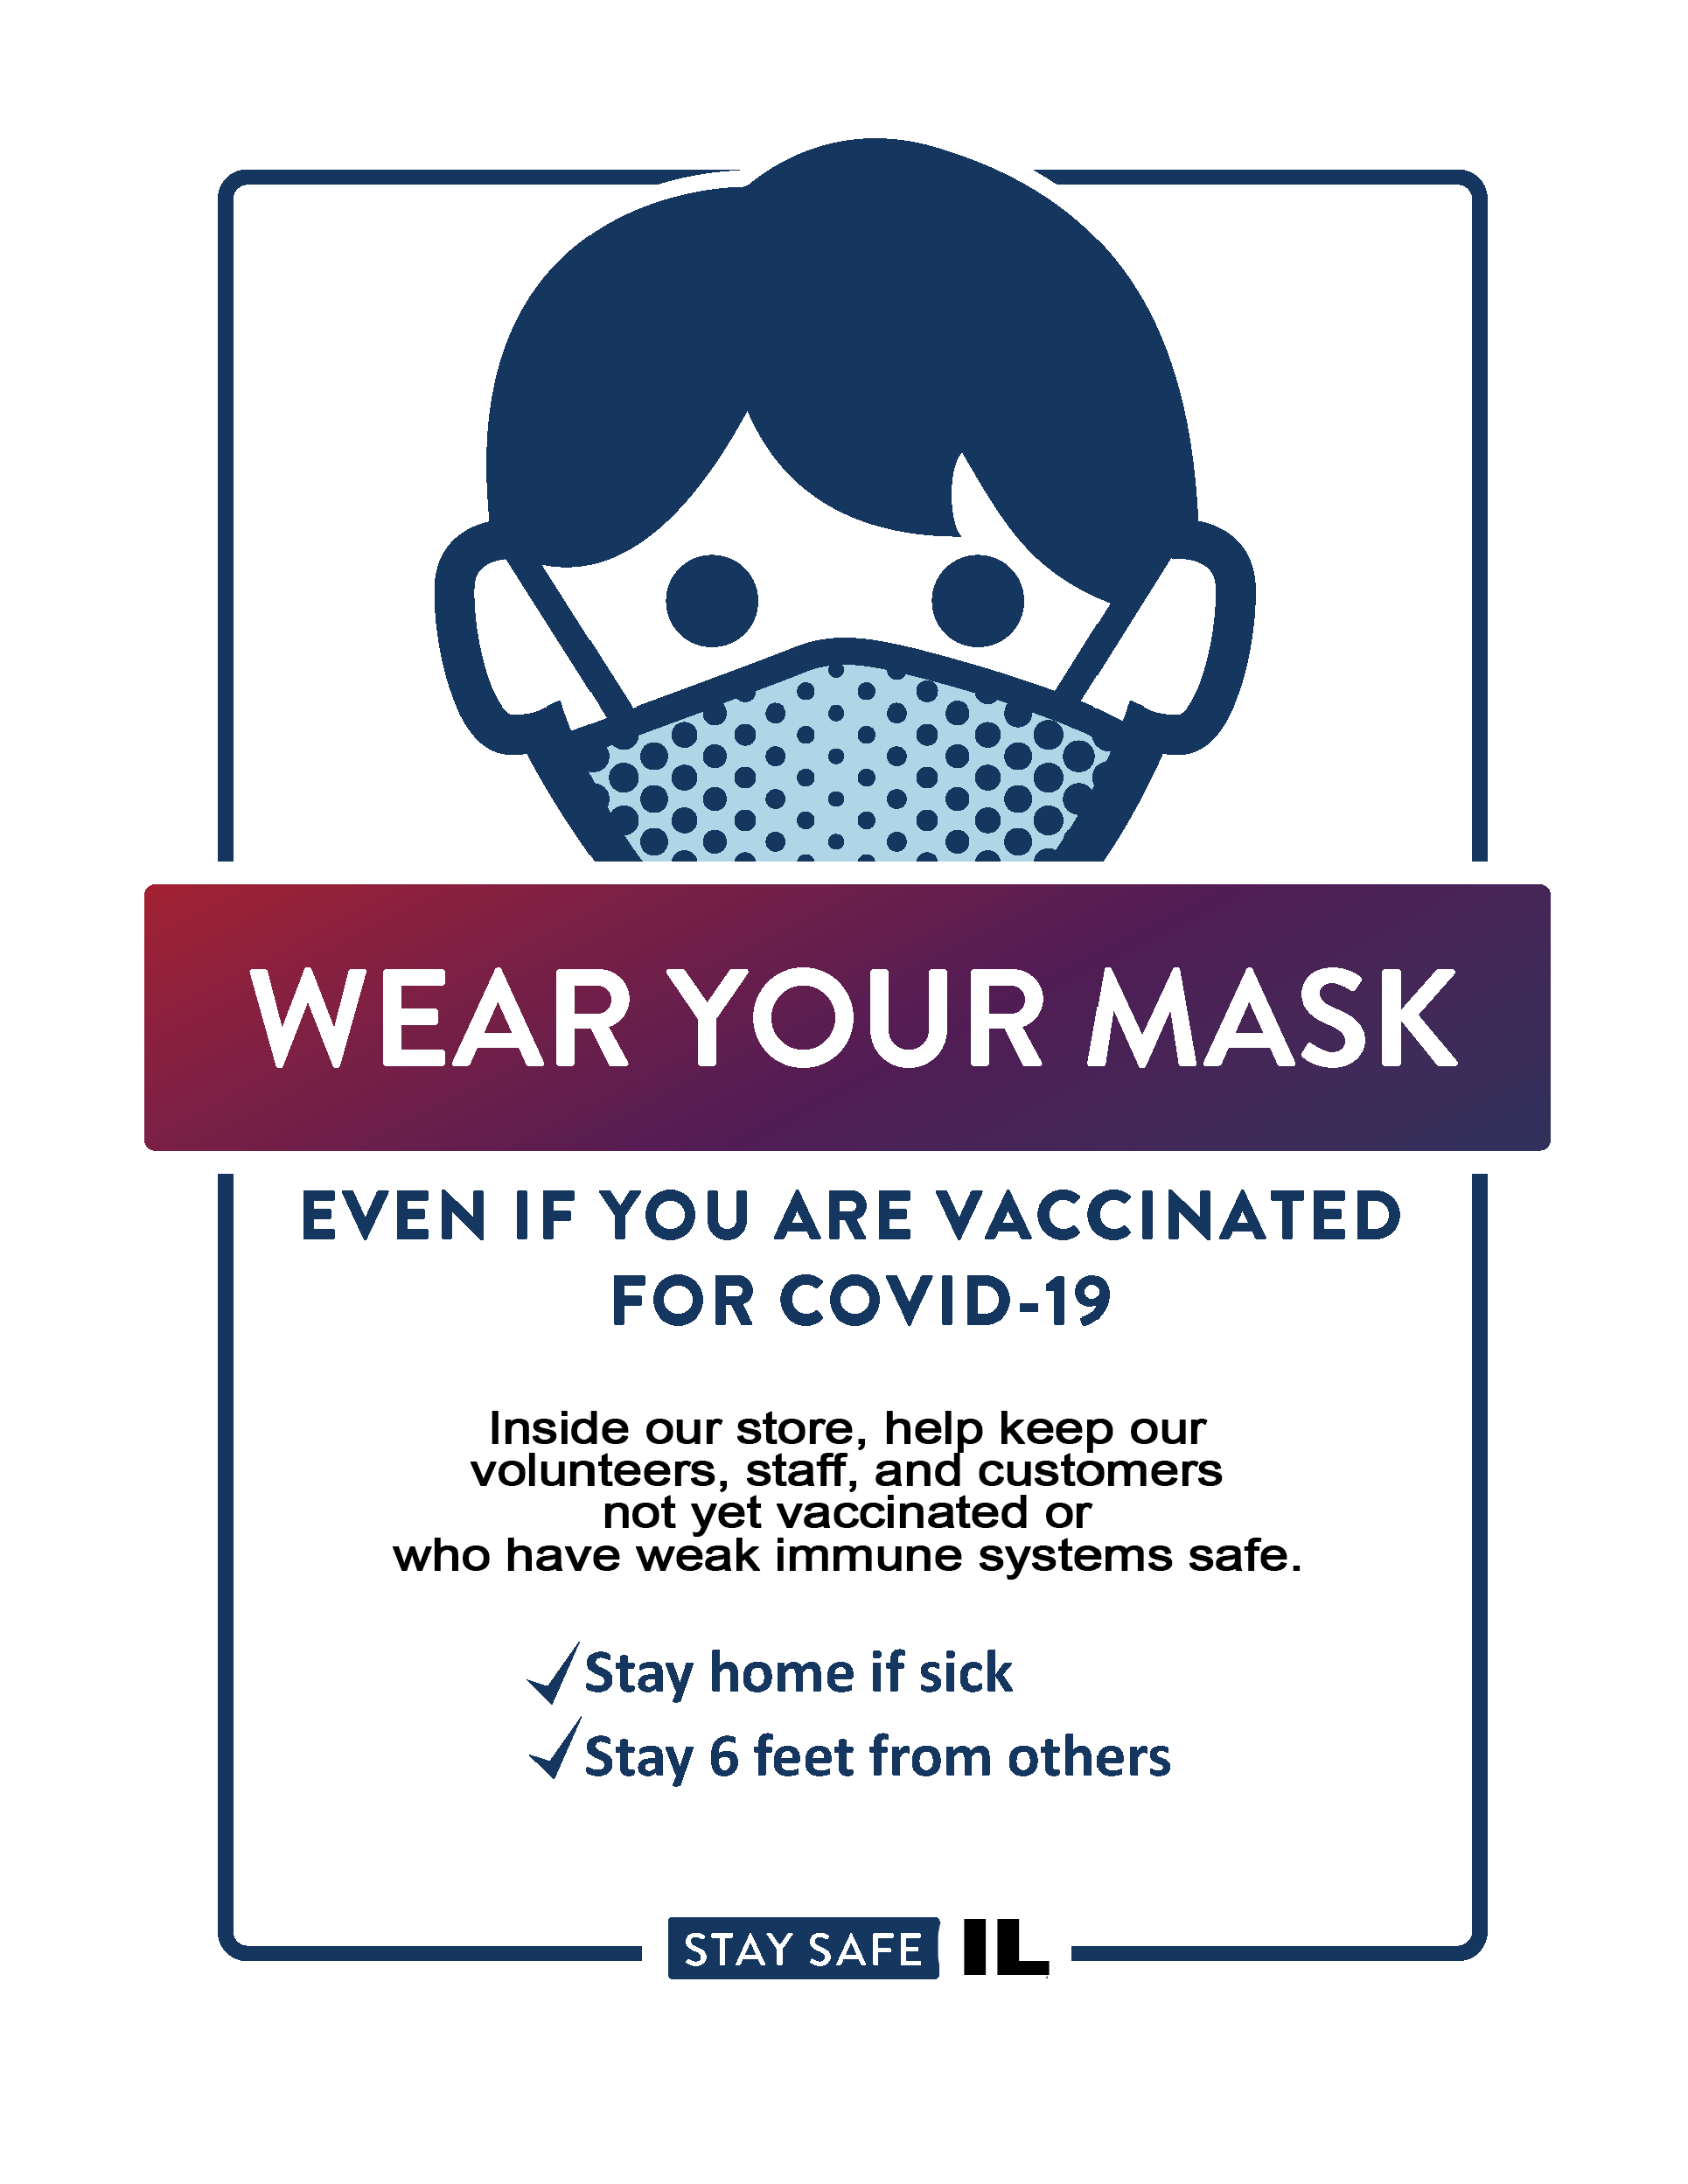 masks_required_after_vax store[13783]